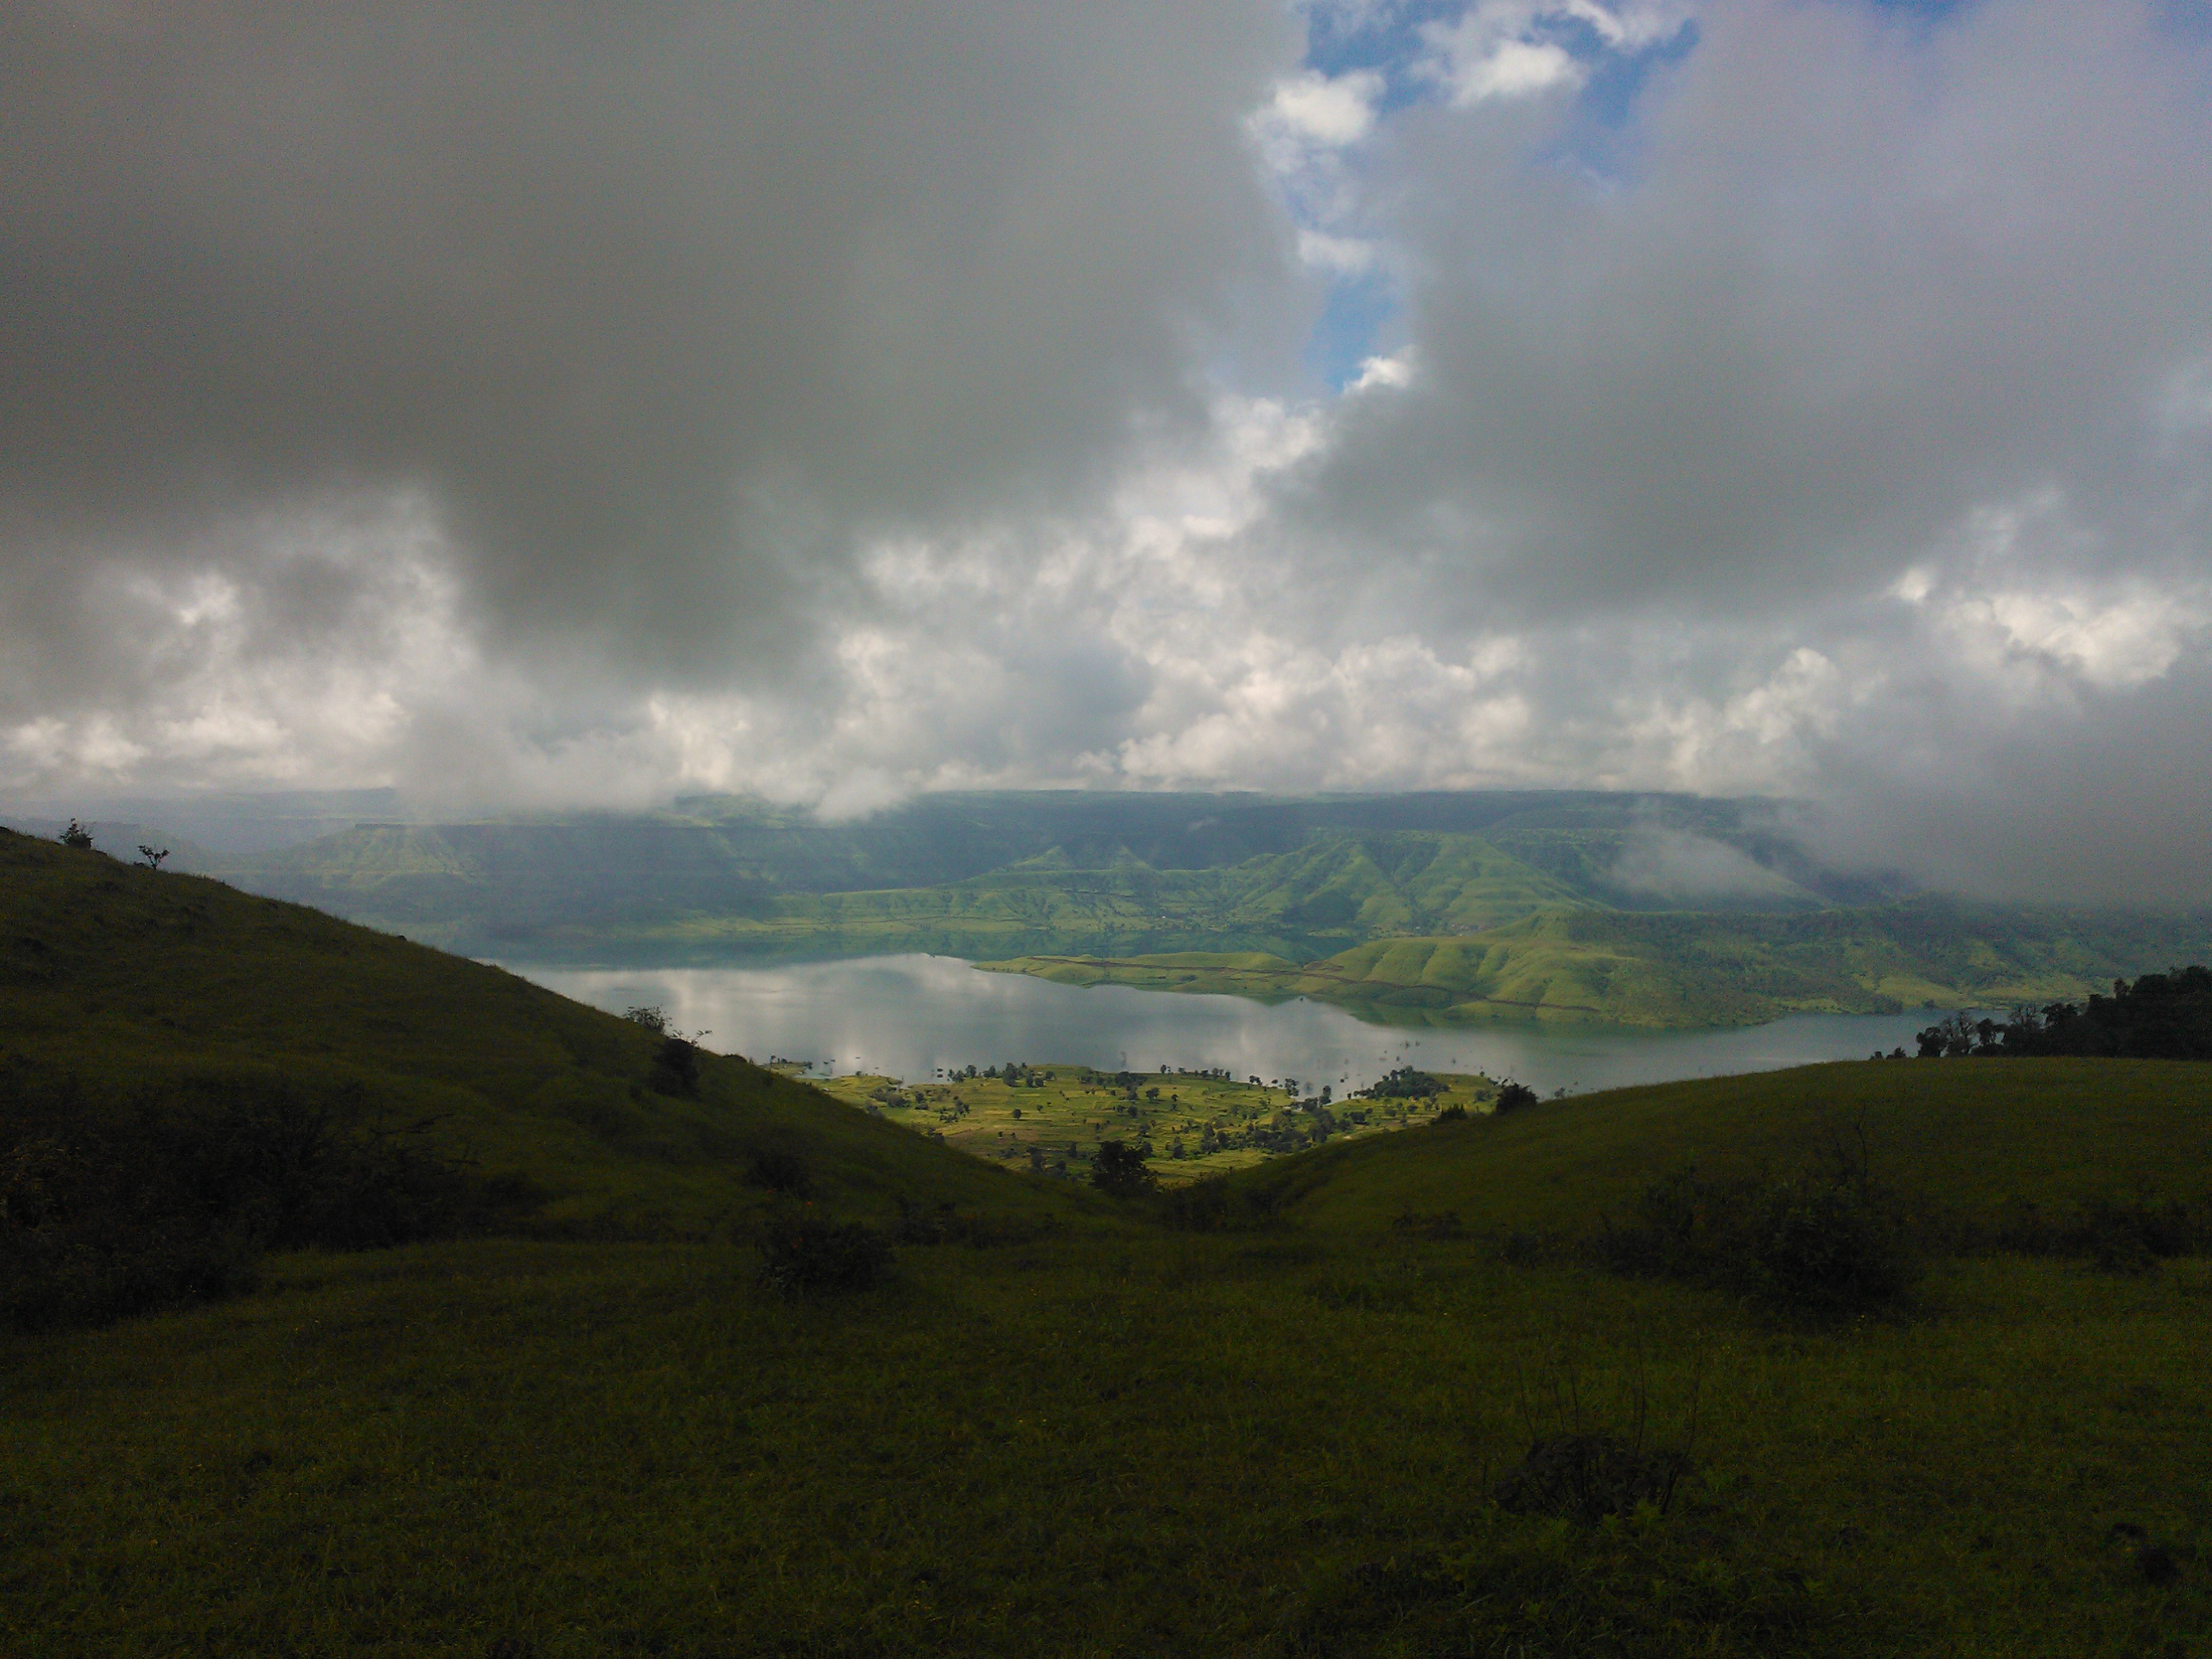 Lake, clouds and hills at Satara